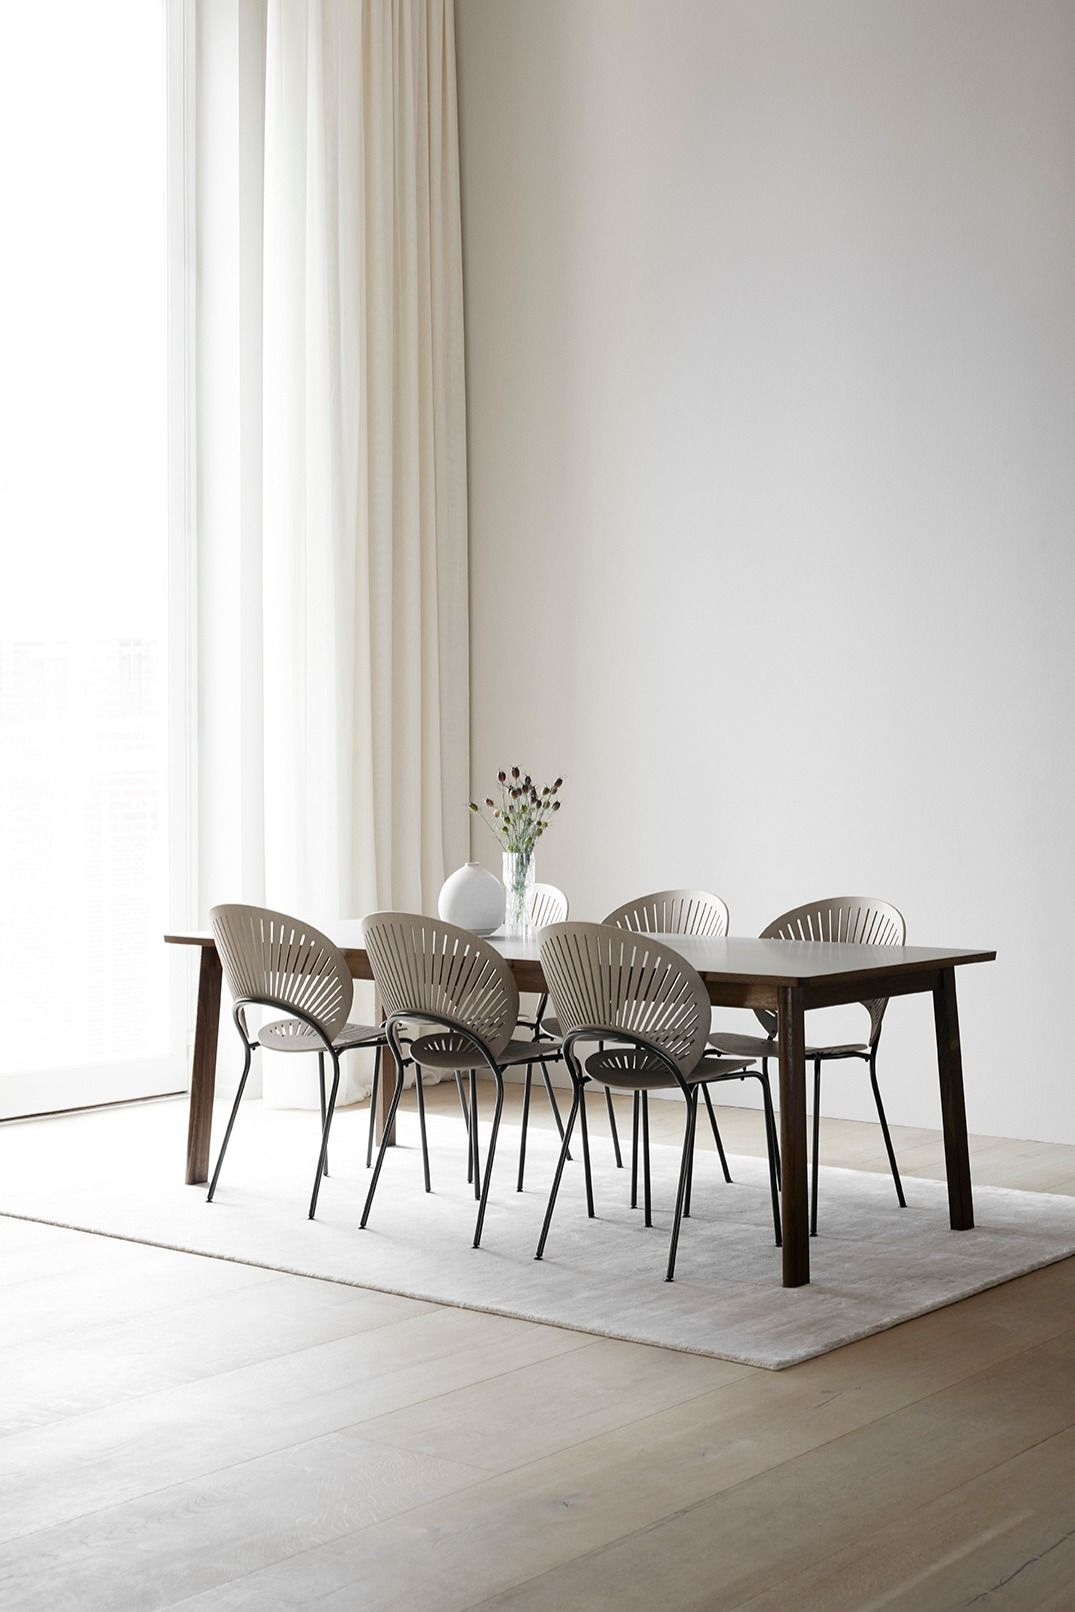 Ana Designed By Arde Is A New Dining Table With Butterfly